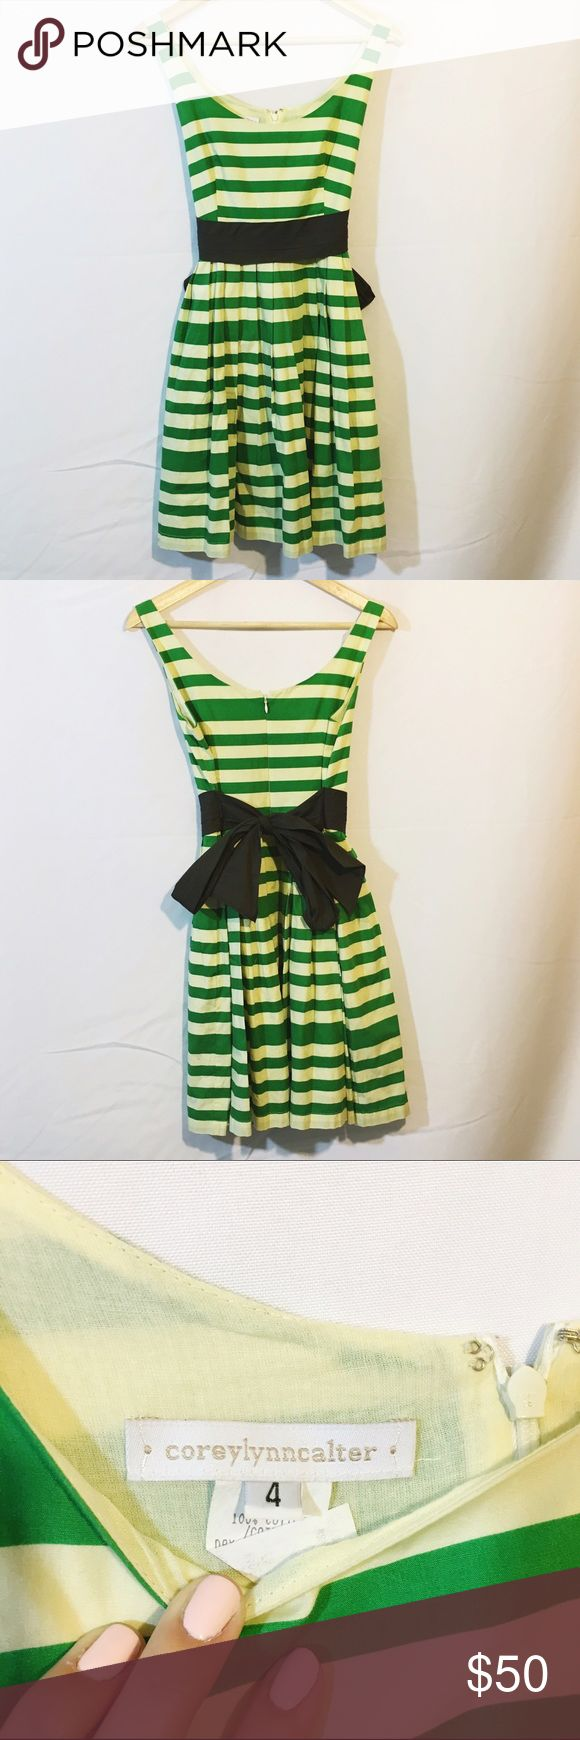 Anthro coreylynncalter green stripe cocktail dress Like new condition. So cute!!! From designer Corey Lynn calter for anthropologie. Skater skirt pleated with back tie no stains Anthropologie Dresses Midi